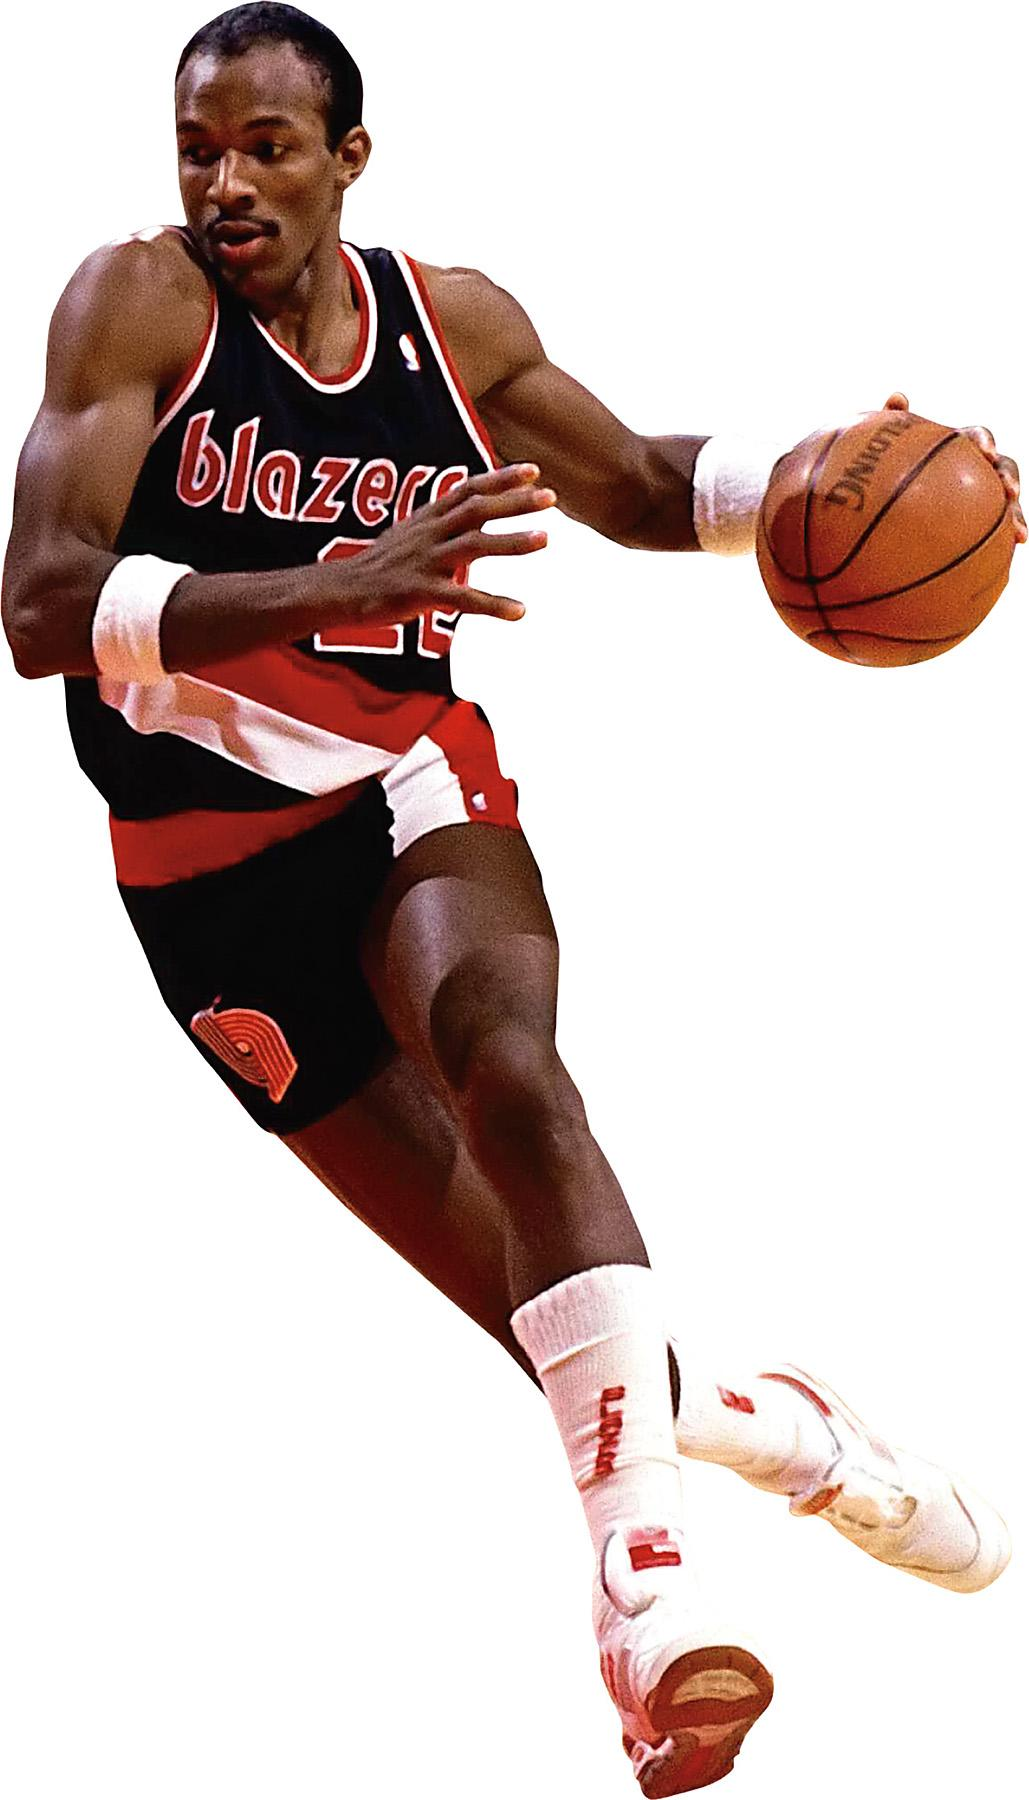 large area rugs with 229545 1156 Portland Trail Blazers Clyde Drexler Fathead Jr on Family Recreation Barn Living Area Contemporary Living Room Grand Rapids as well 206393288 as well 203596636 besides Cowhide Rug also 7577 P522 Timber Tan.